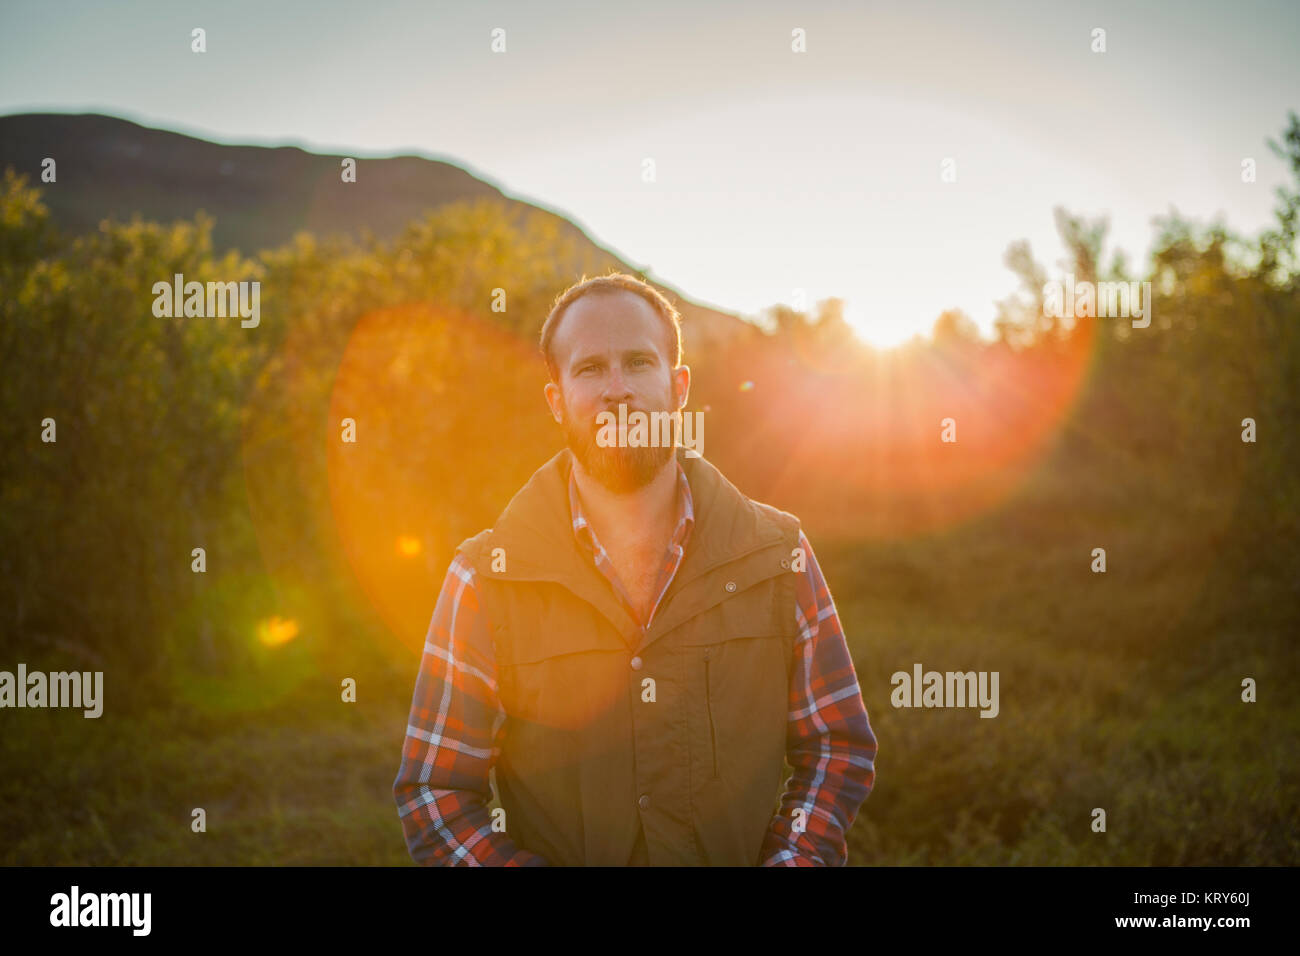 A man outdoors in the Swedish countryside - Stock Image